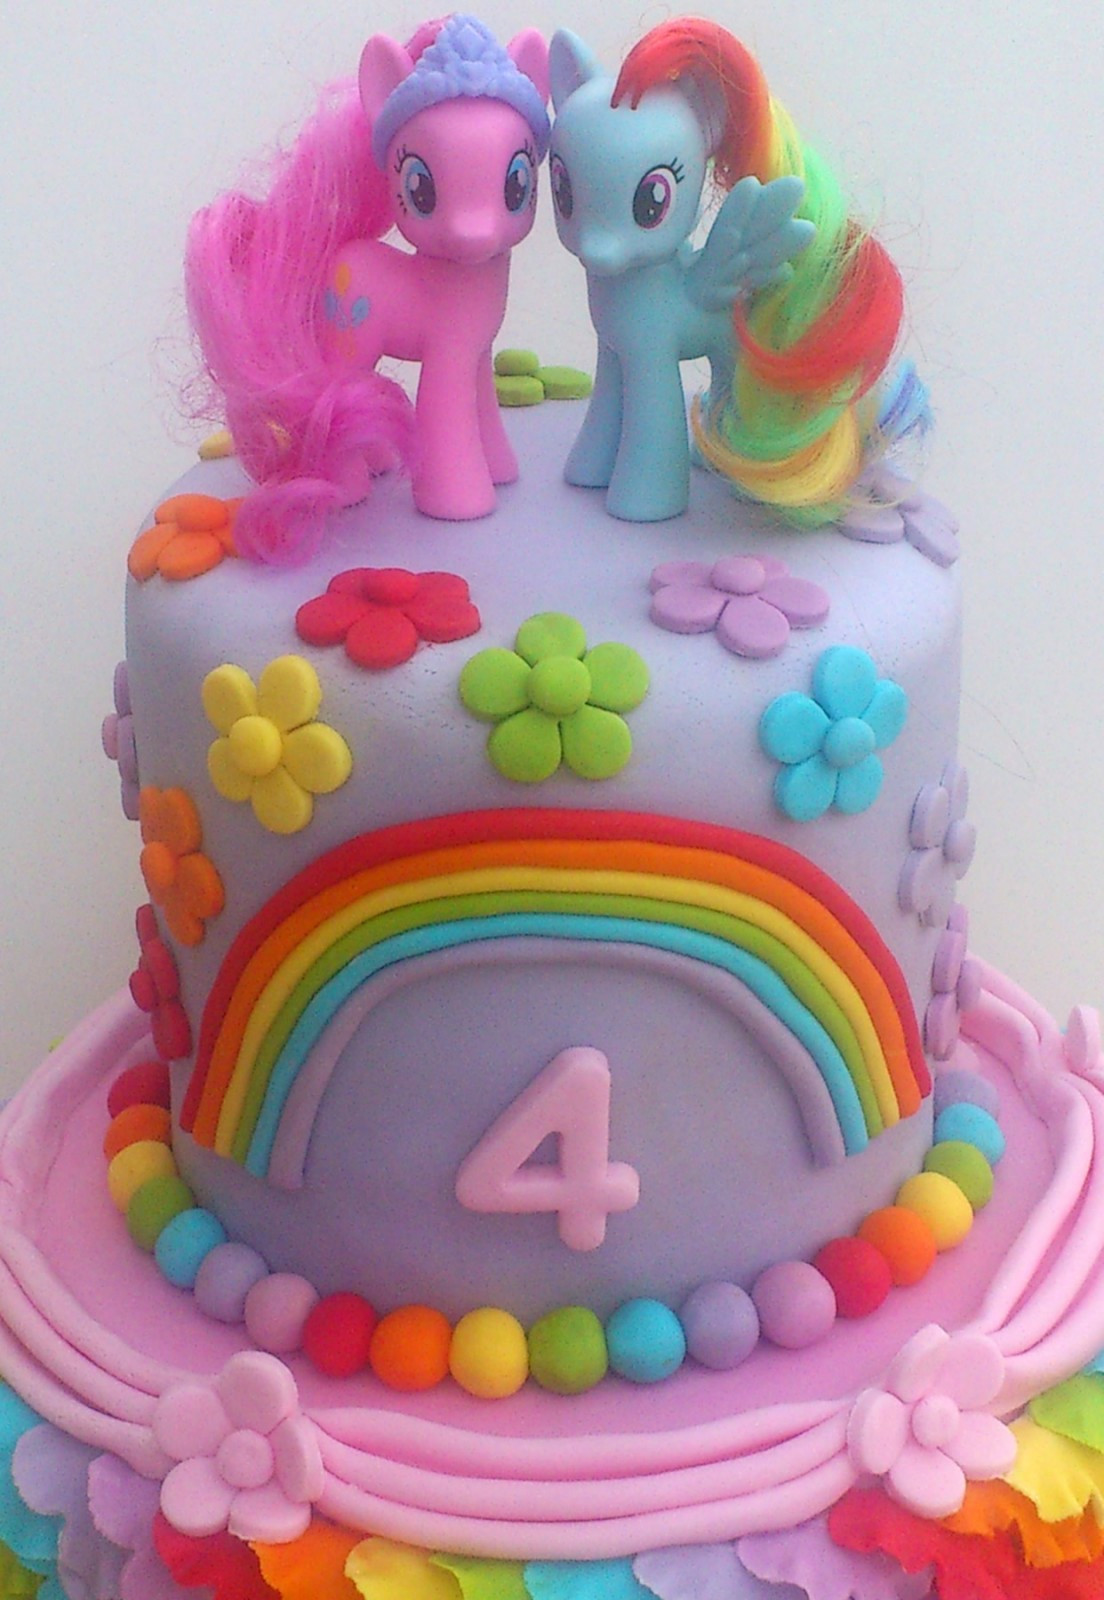 Best ideas about My Little Pony Birthday Cake . Save or Pin My Little Pony on Pinterest Now.